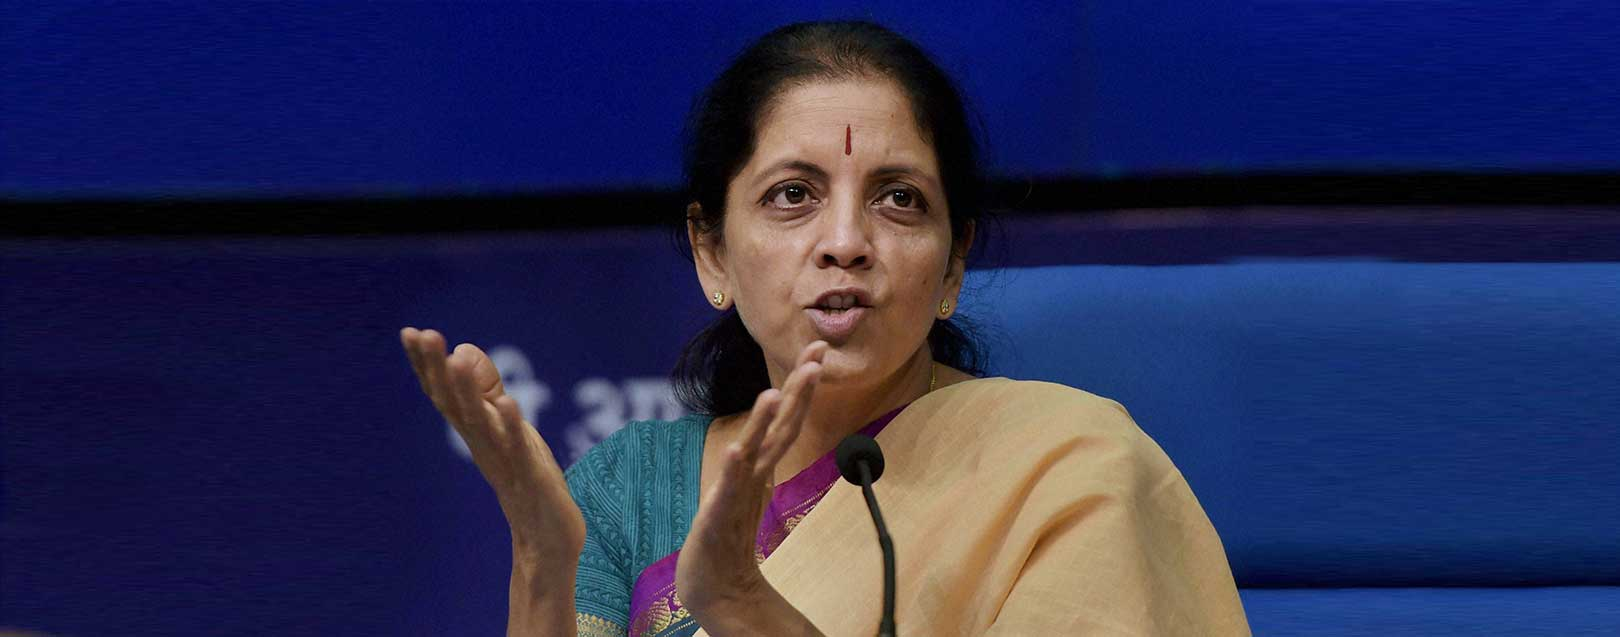 Sitharaman complains of 'sledging' in FTA talks